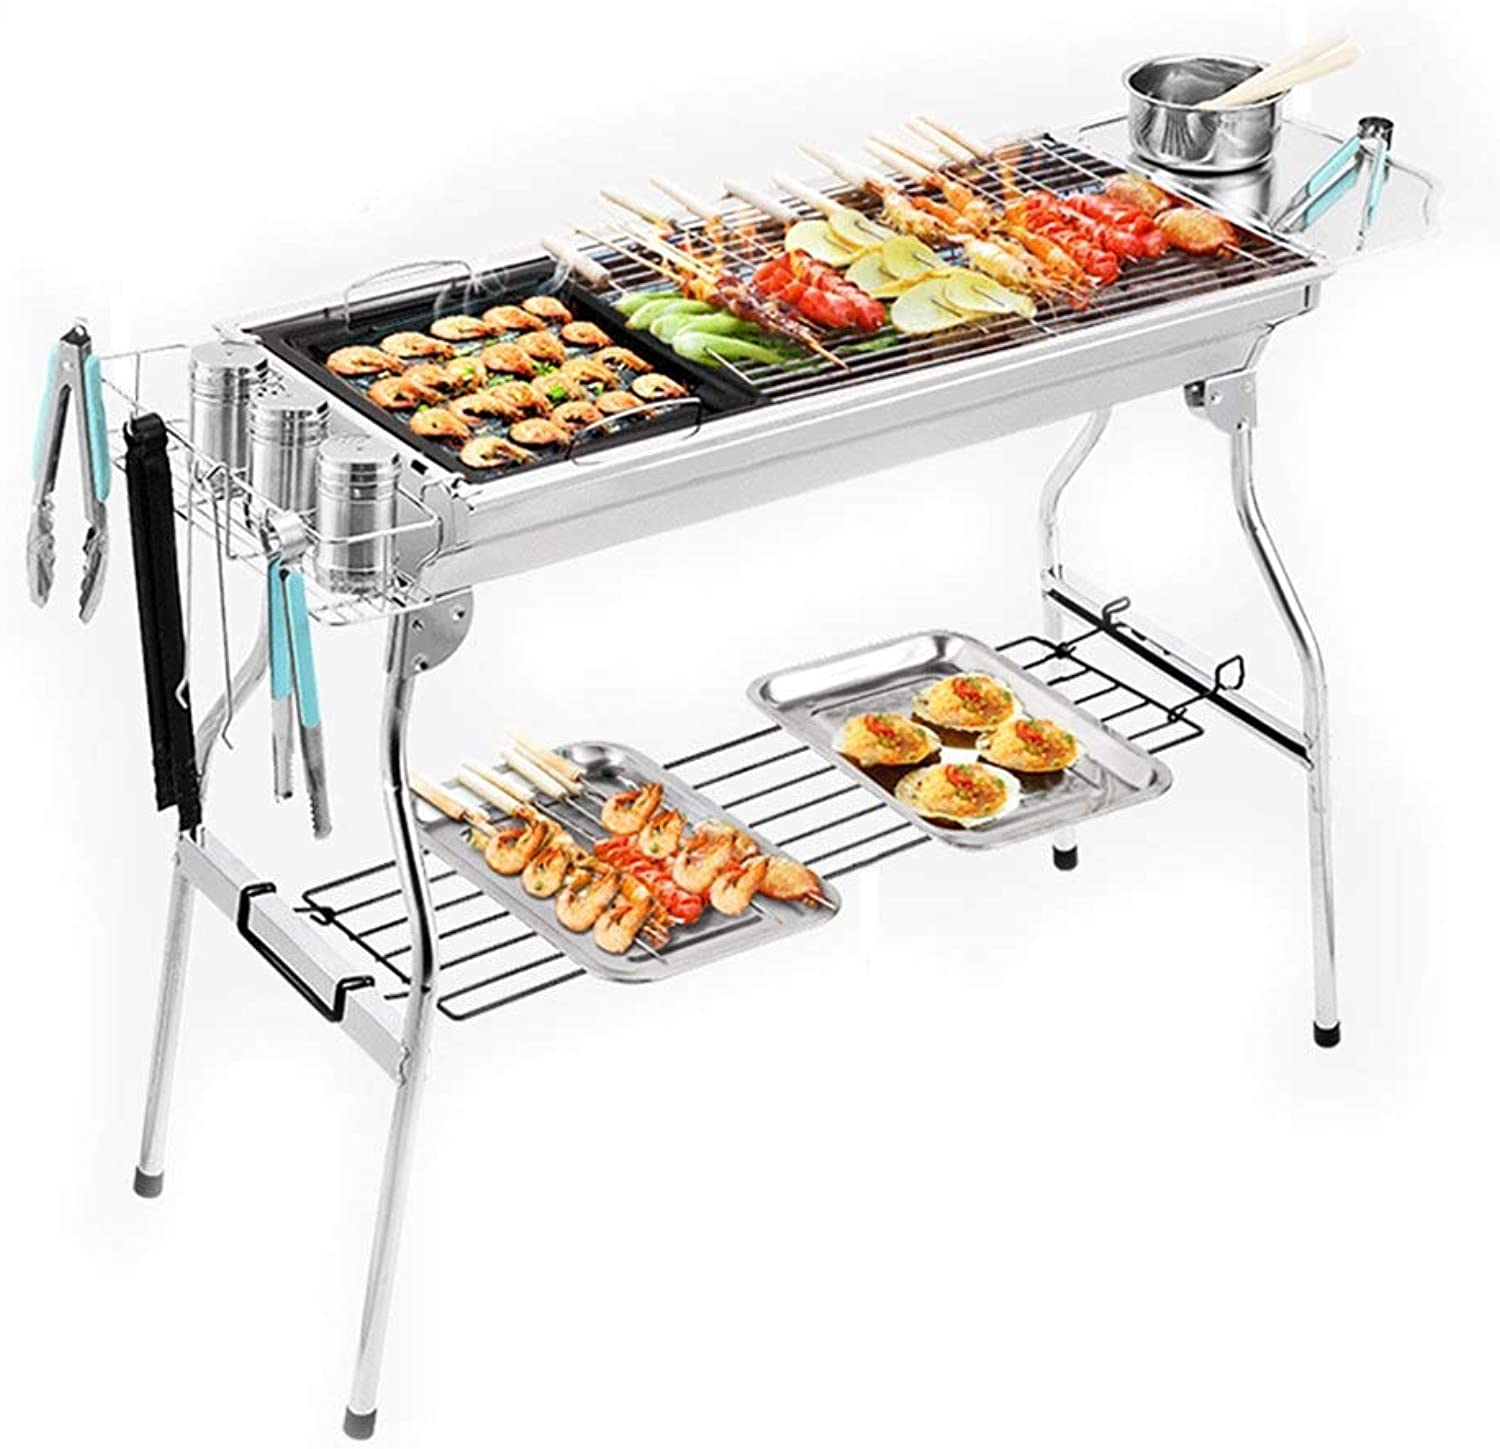 BBQ Supplies Barbecue Easy Barbecues Tool Set Stainless Steel Grill Charcoal Grill Outdoor Grill for More Than 5 People FullFeature Picnic Tools Folding Garden Grill